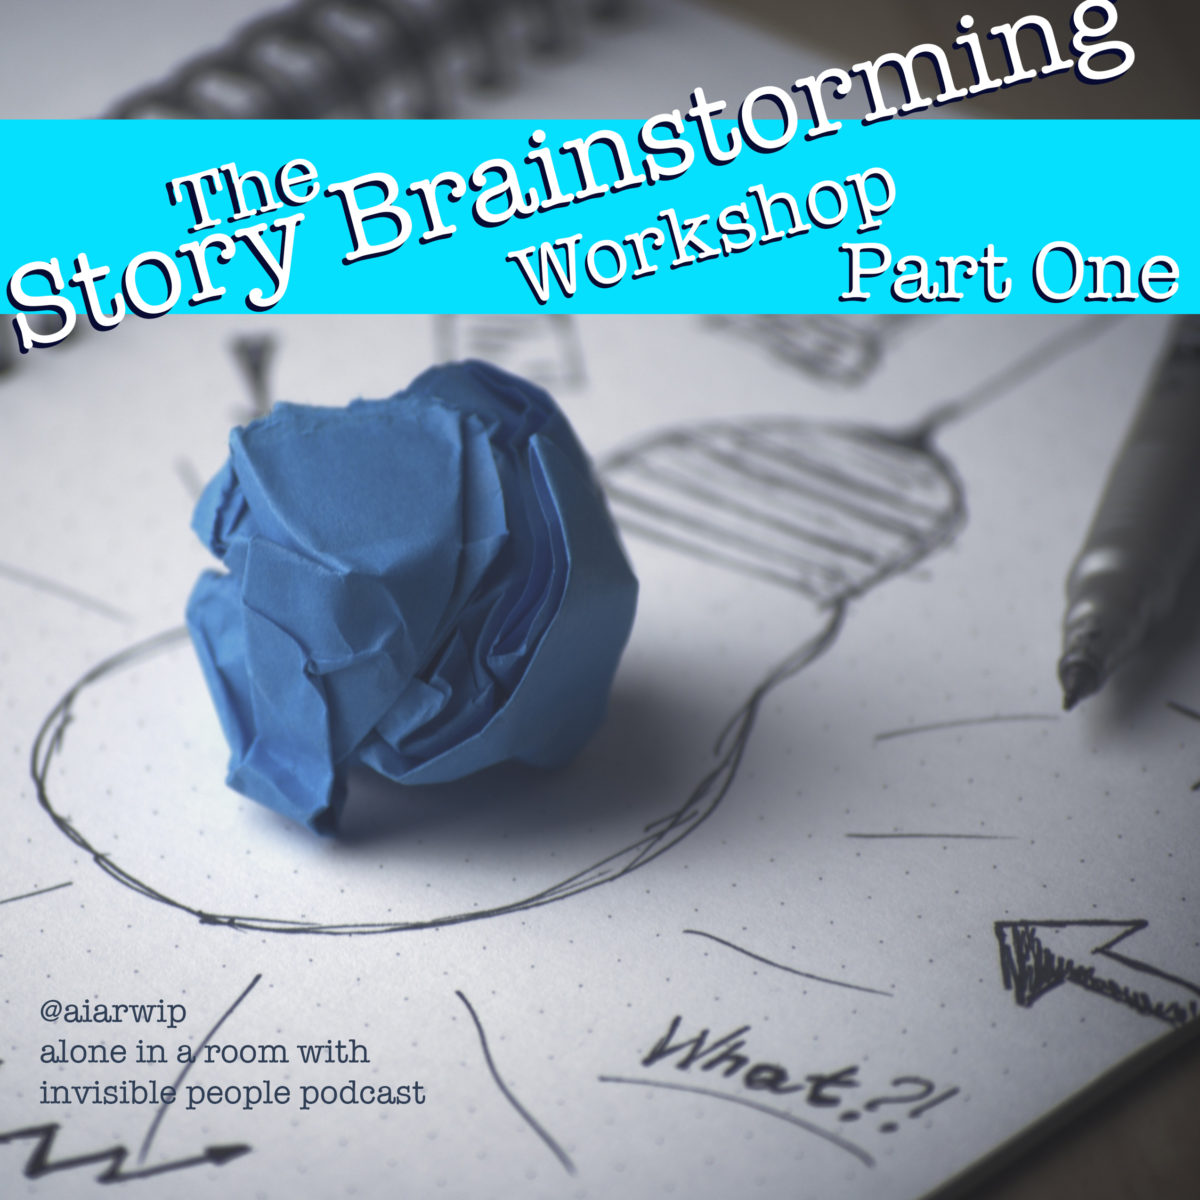 Episode 04: The Story Brainstorming Workshop – Part One